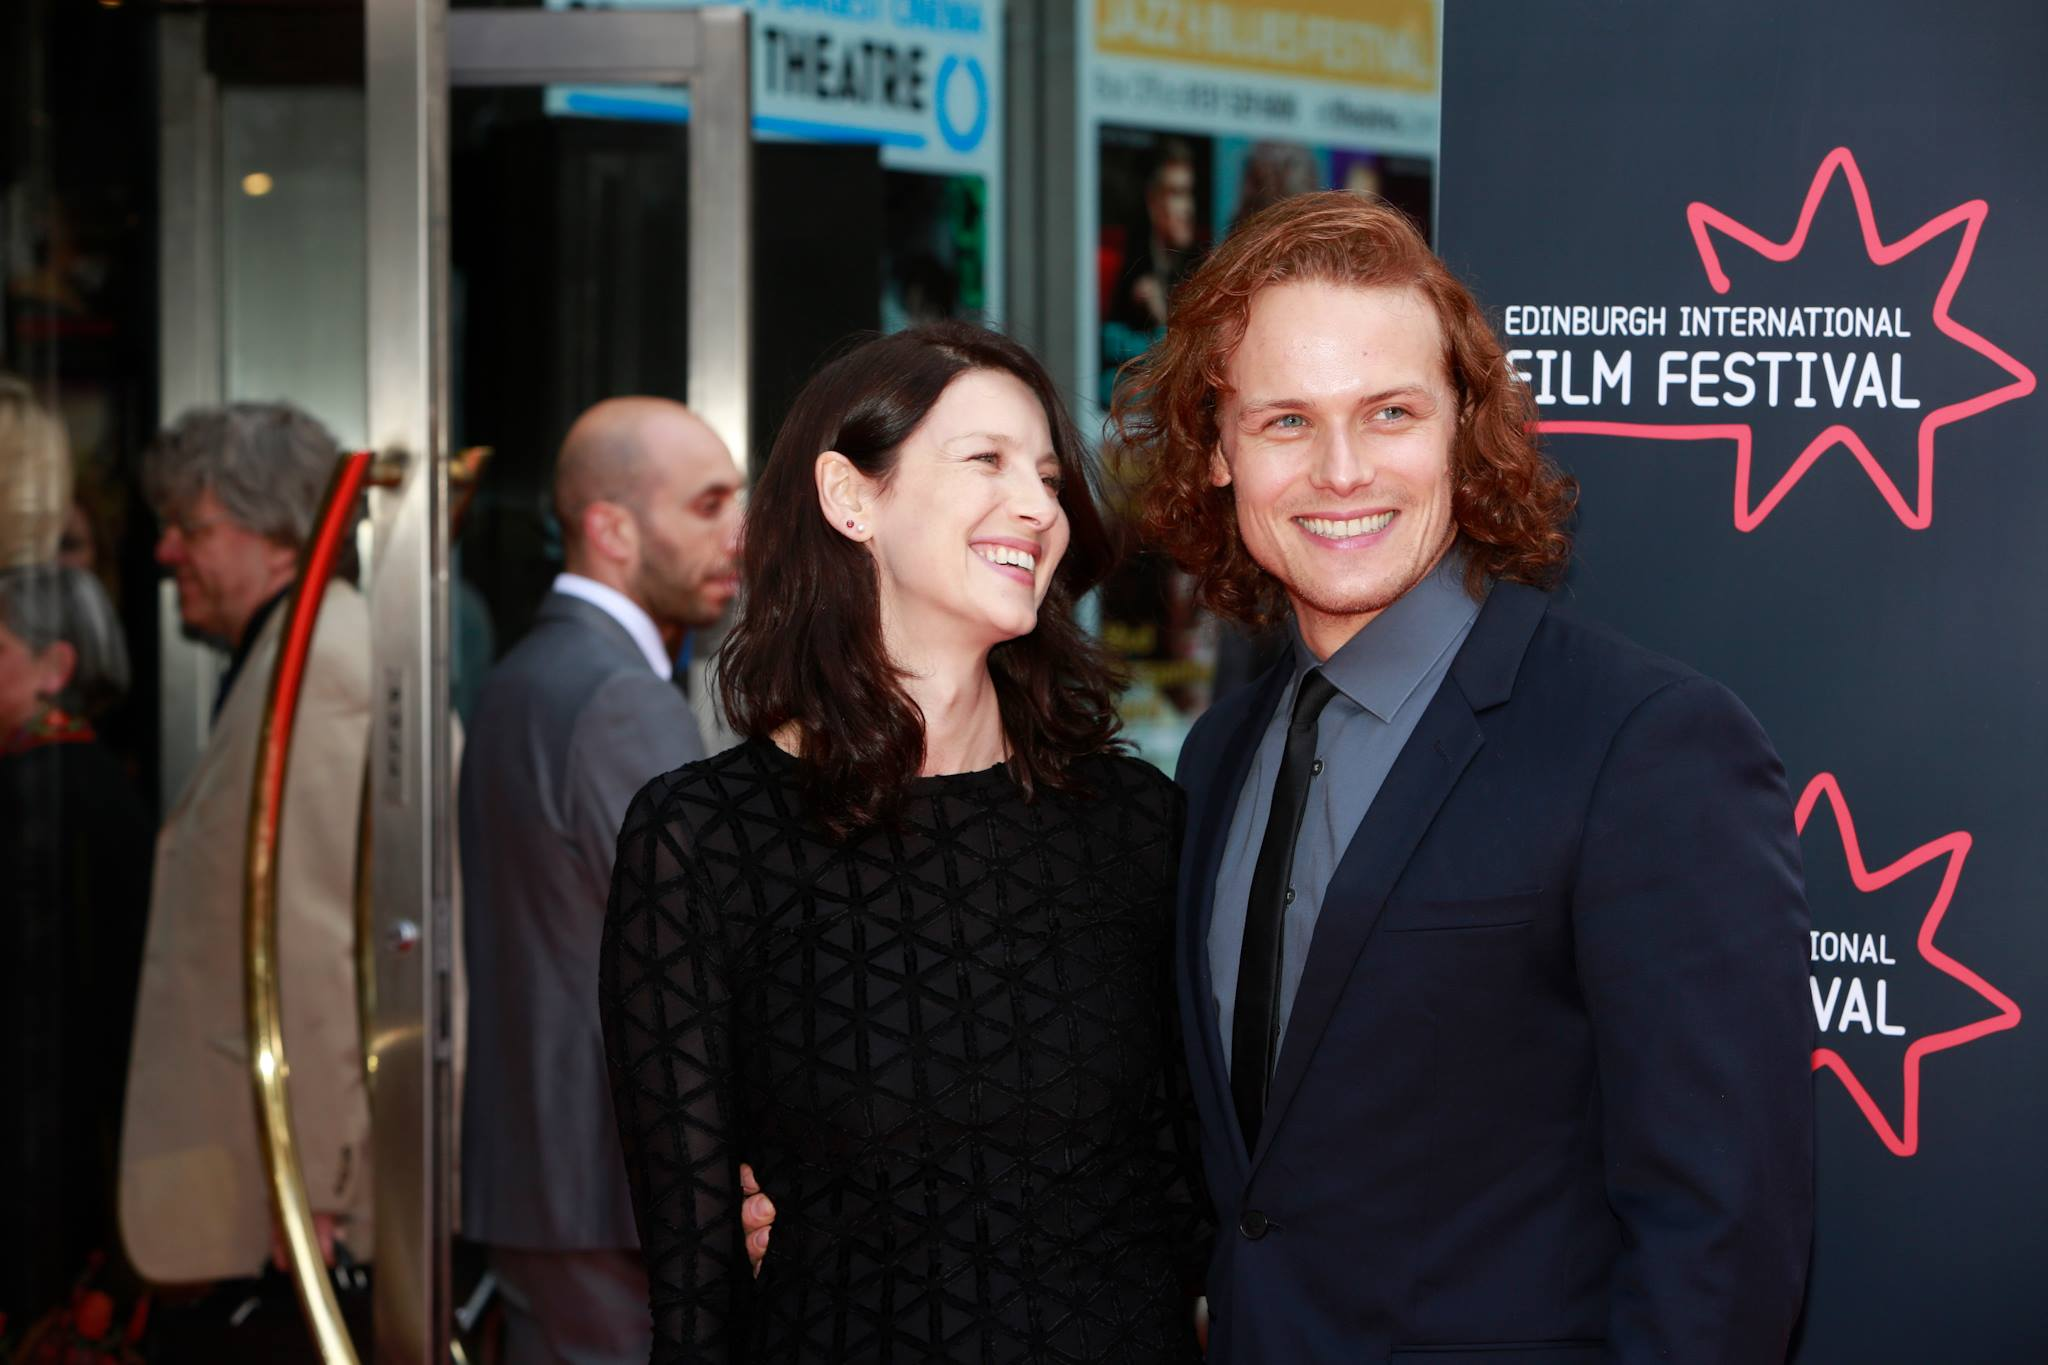 HQ Pics of Sam Heughan and Caitriona Balfe at the ...